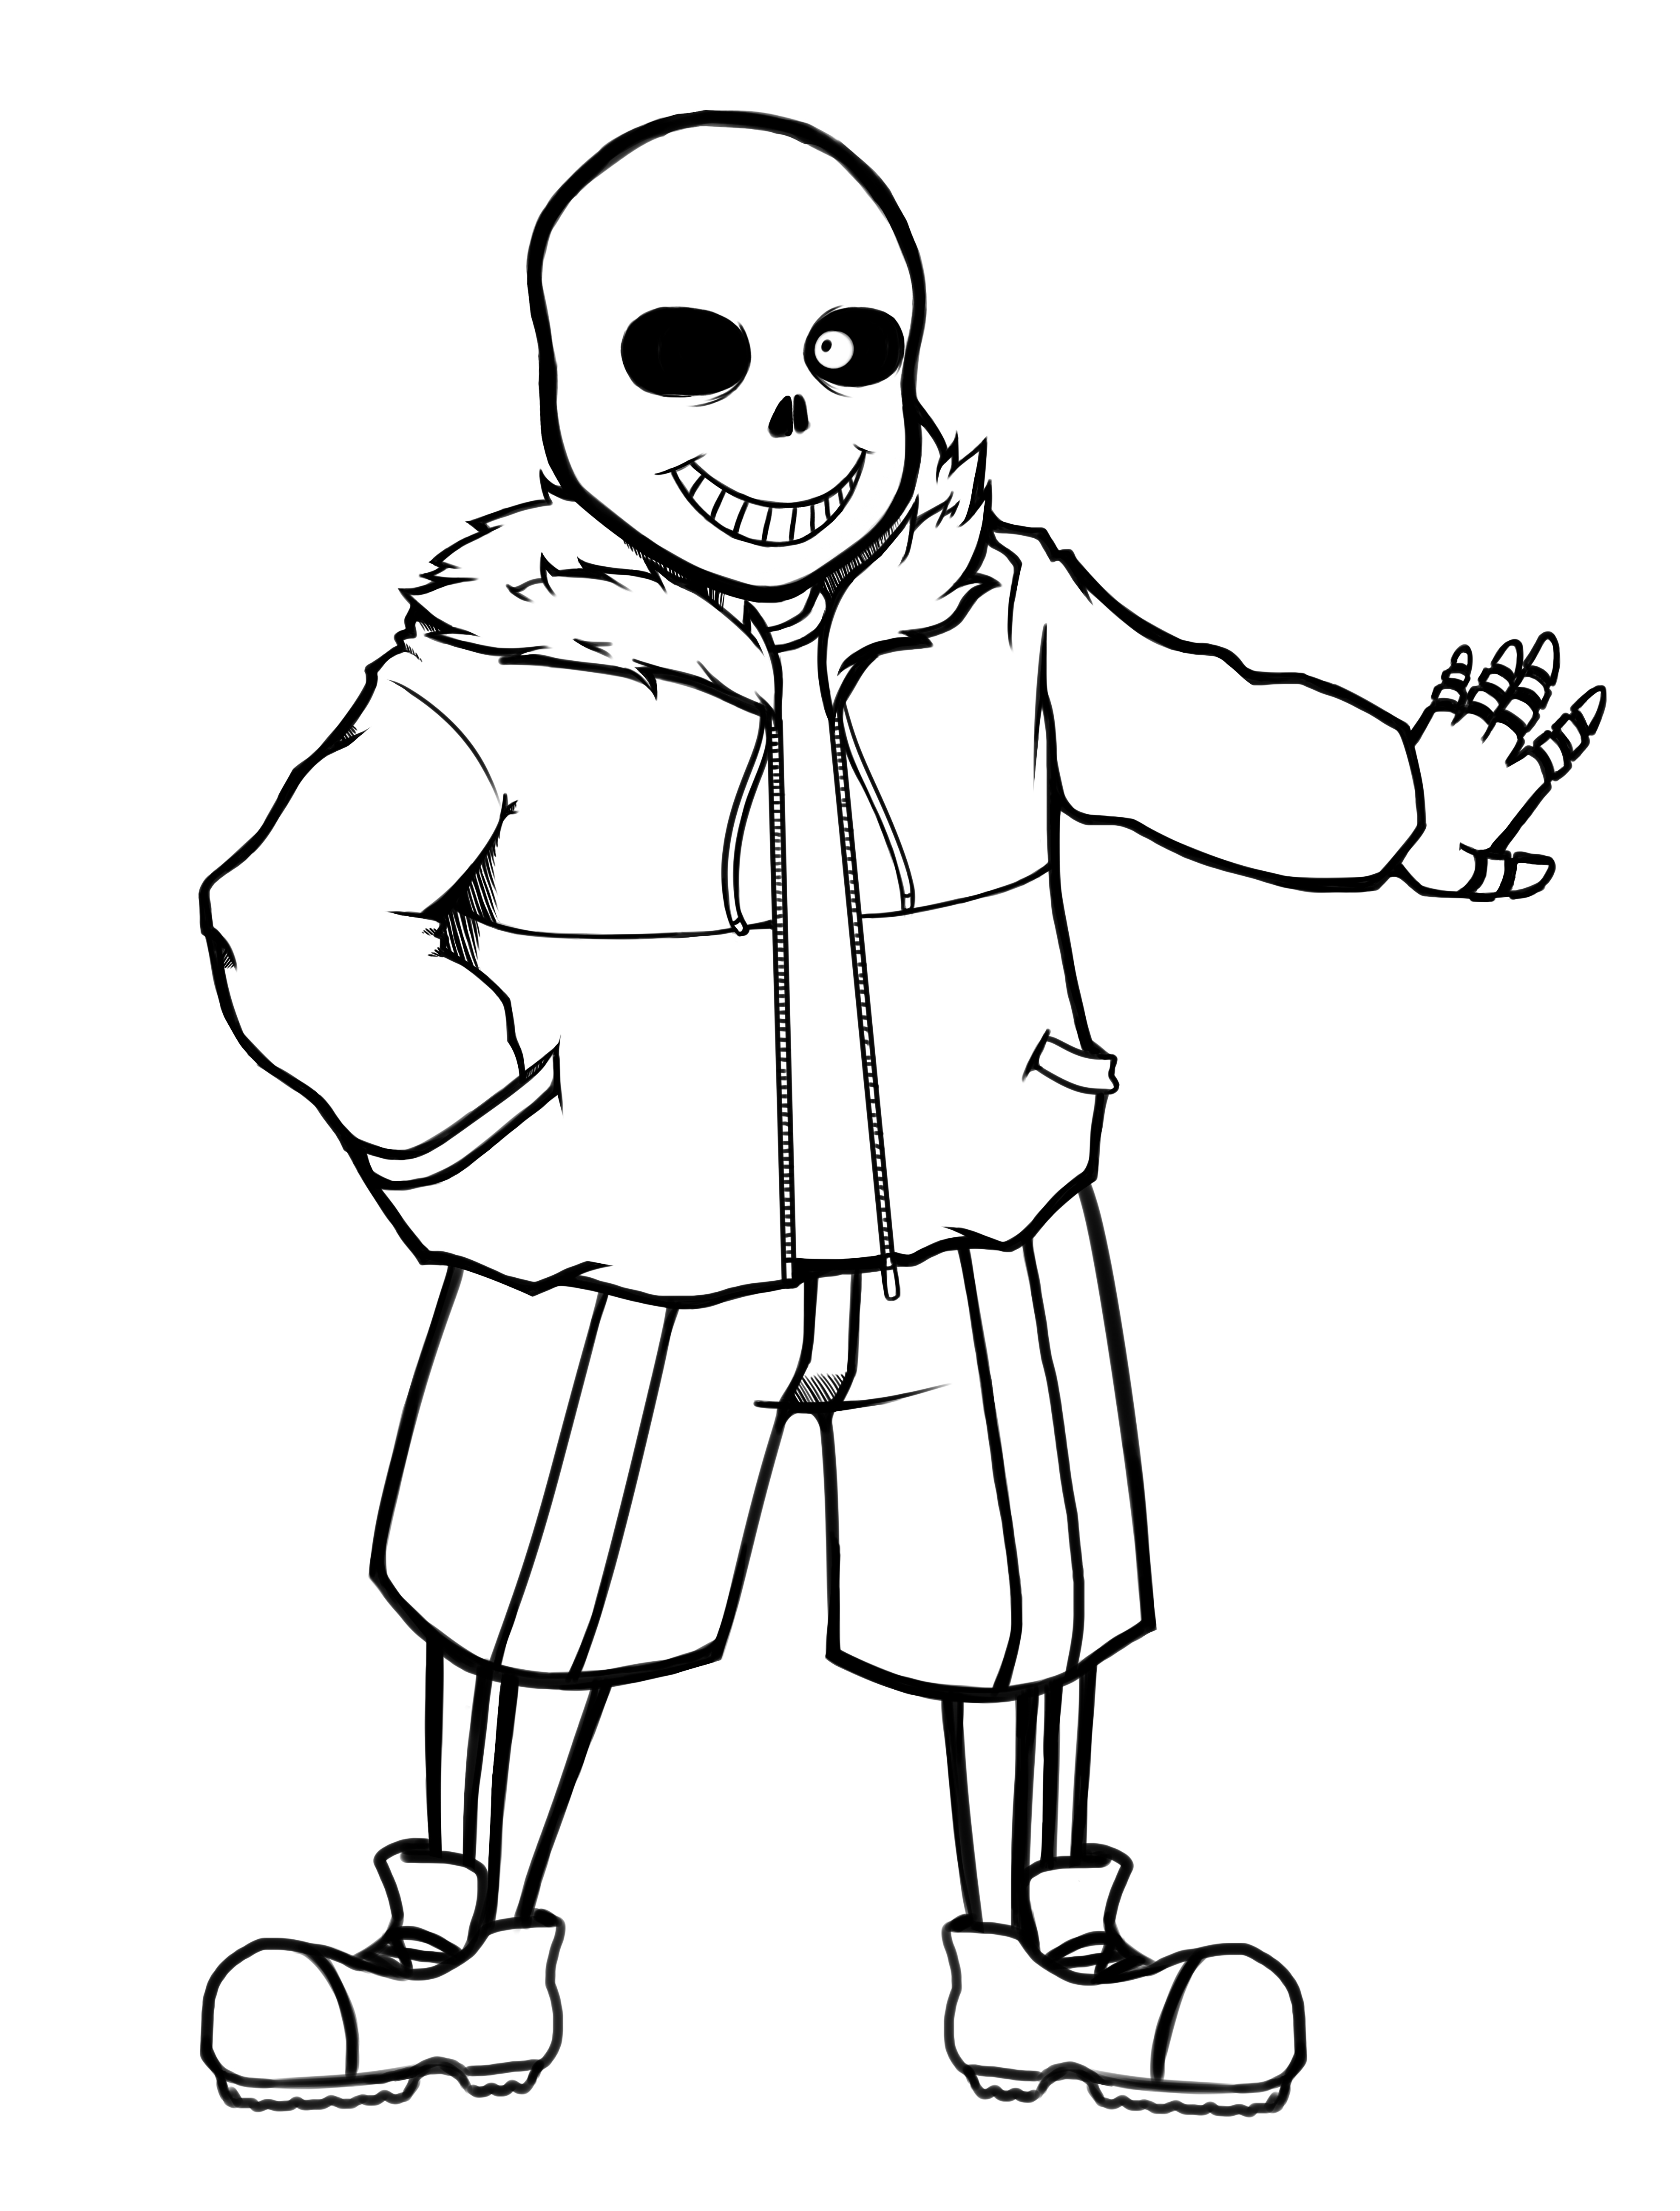 sans coloring page sans the skeleton free coloring pages